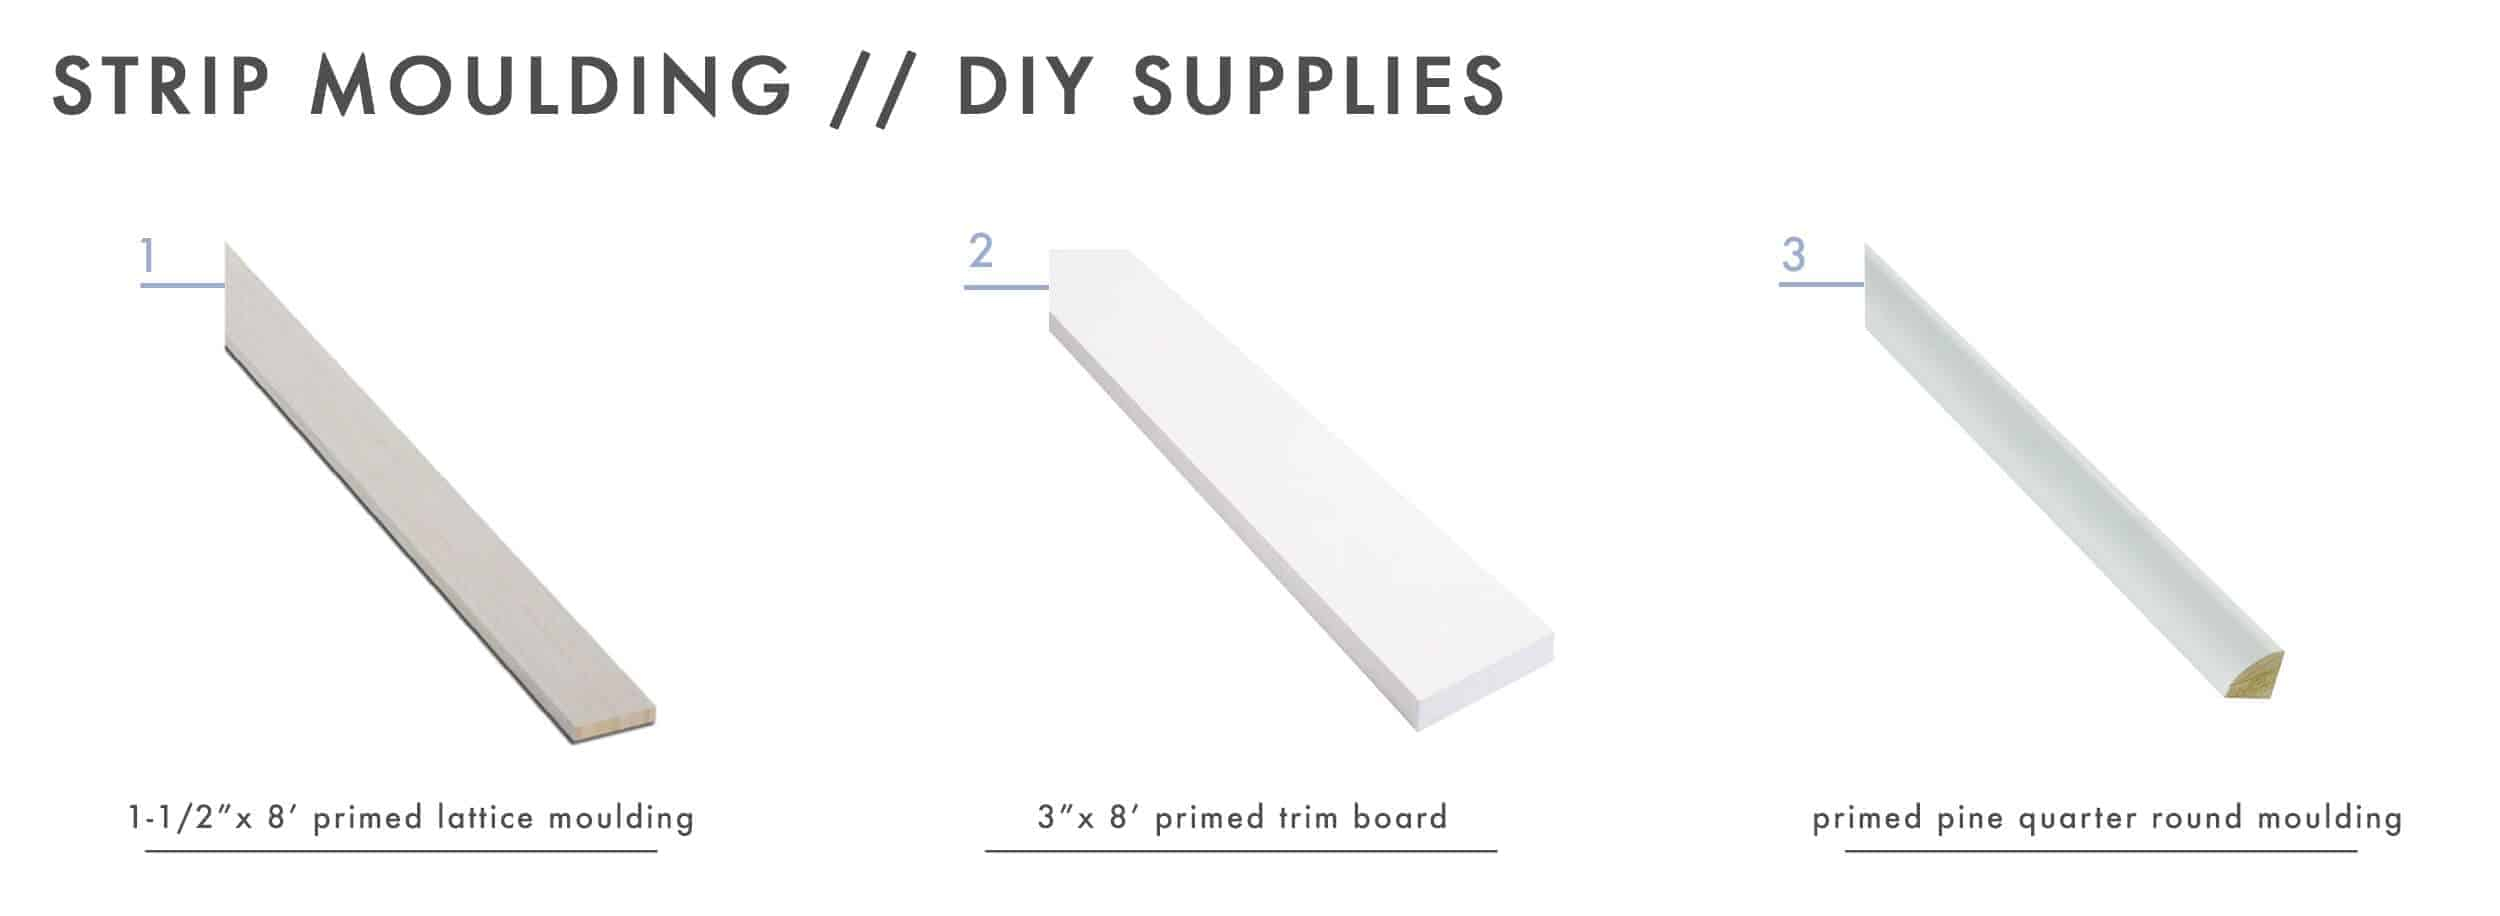 How To Add Character And Charm To Boring Architecture And Houses Ceiling Strip Moulding Diy Supplies